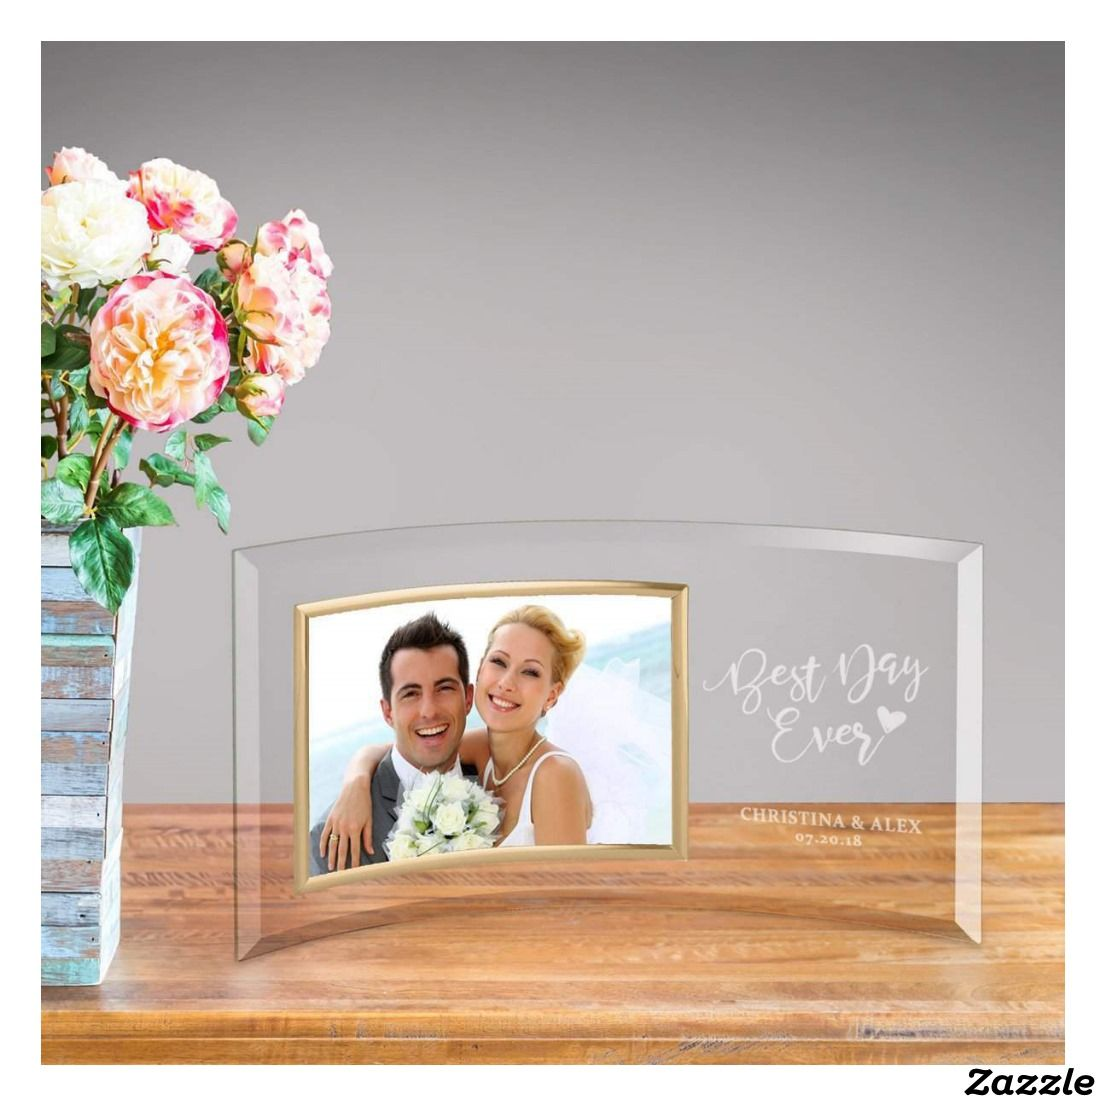 Best Day Ever Engraved Curved Glass Picture Frame